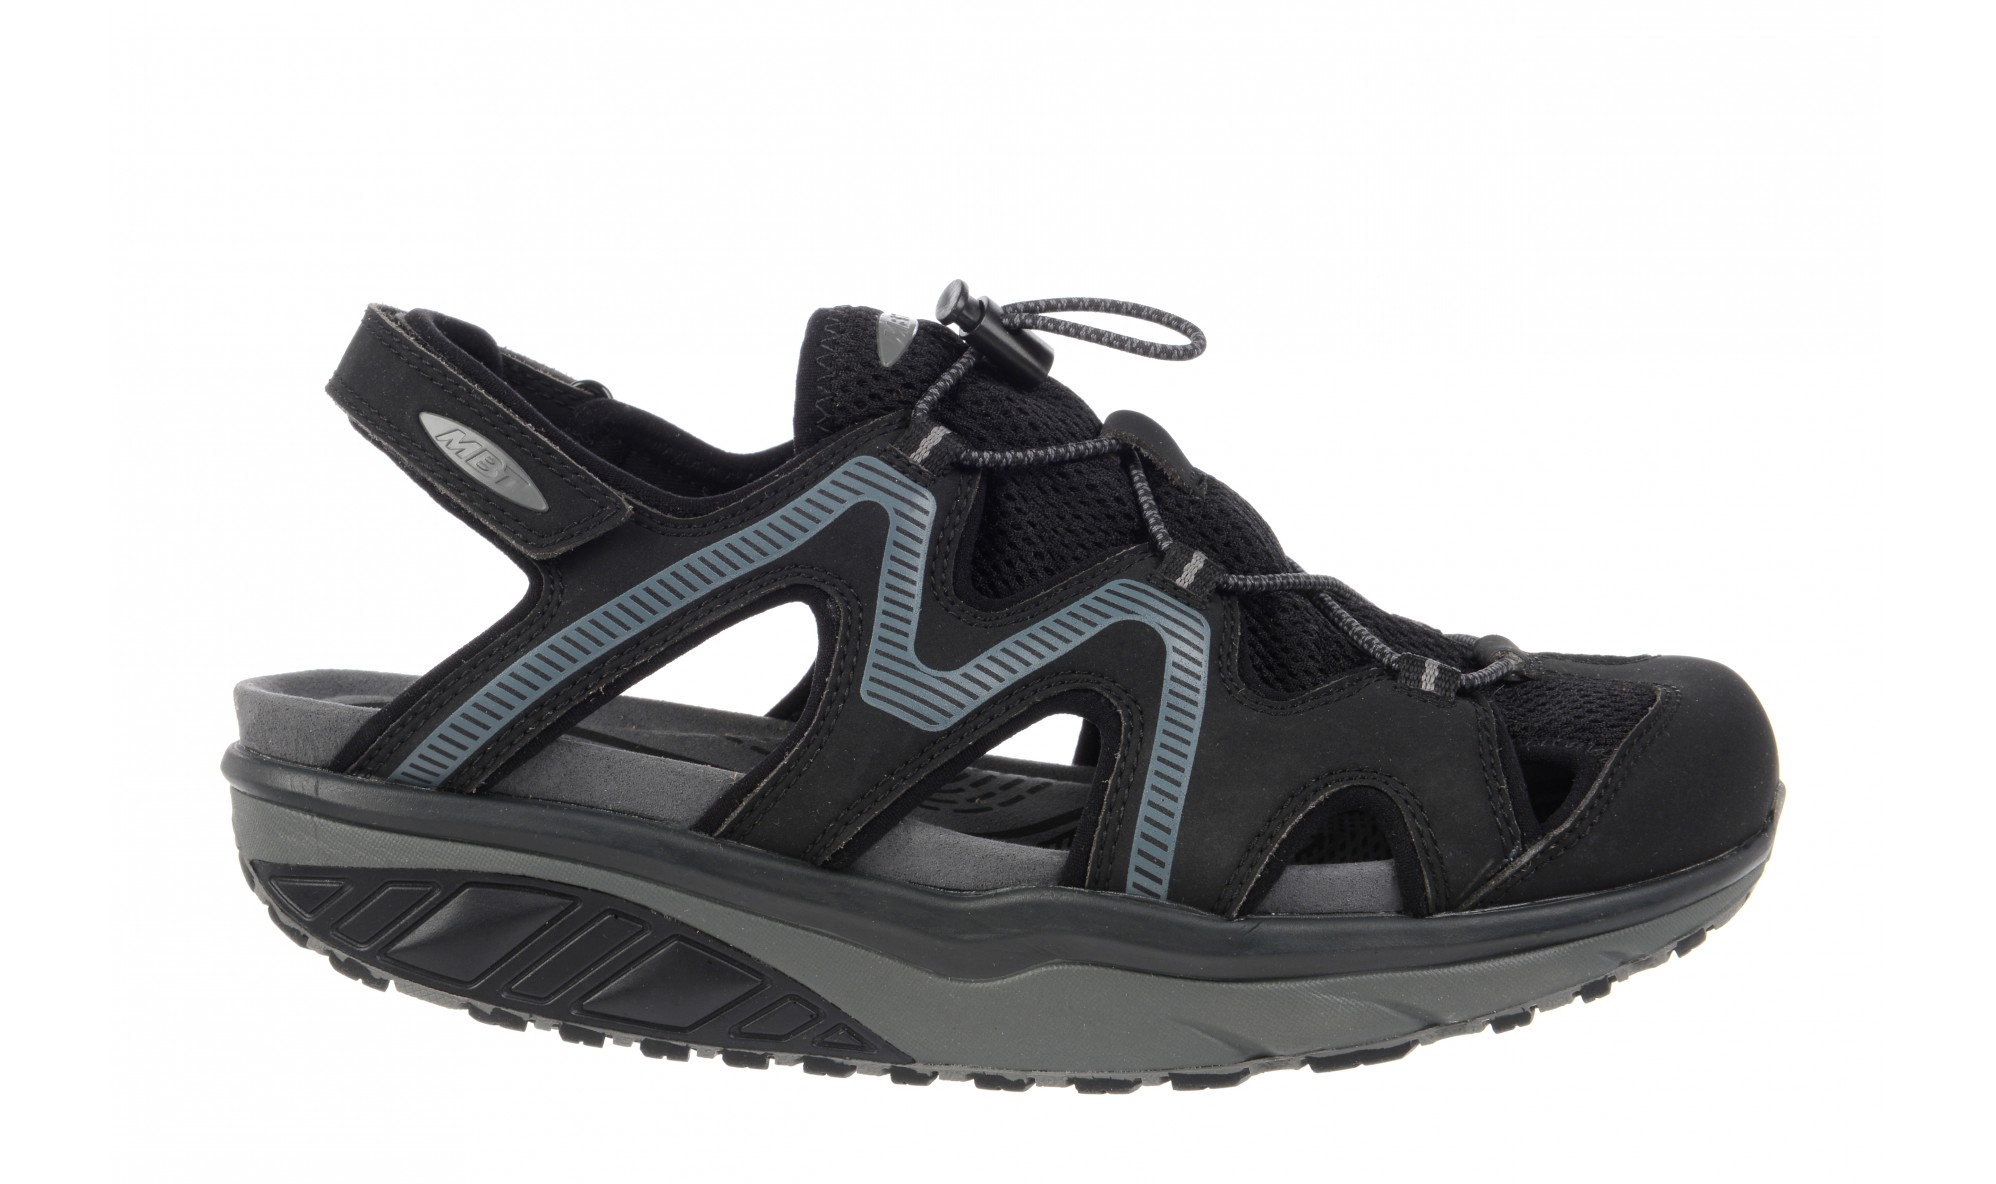 MBT Men's Jefar 6 Trail Sandal Black / Charcoal Grey